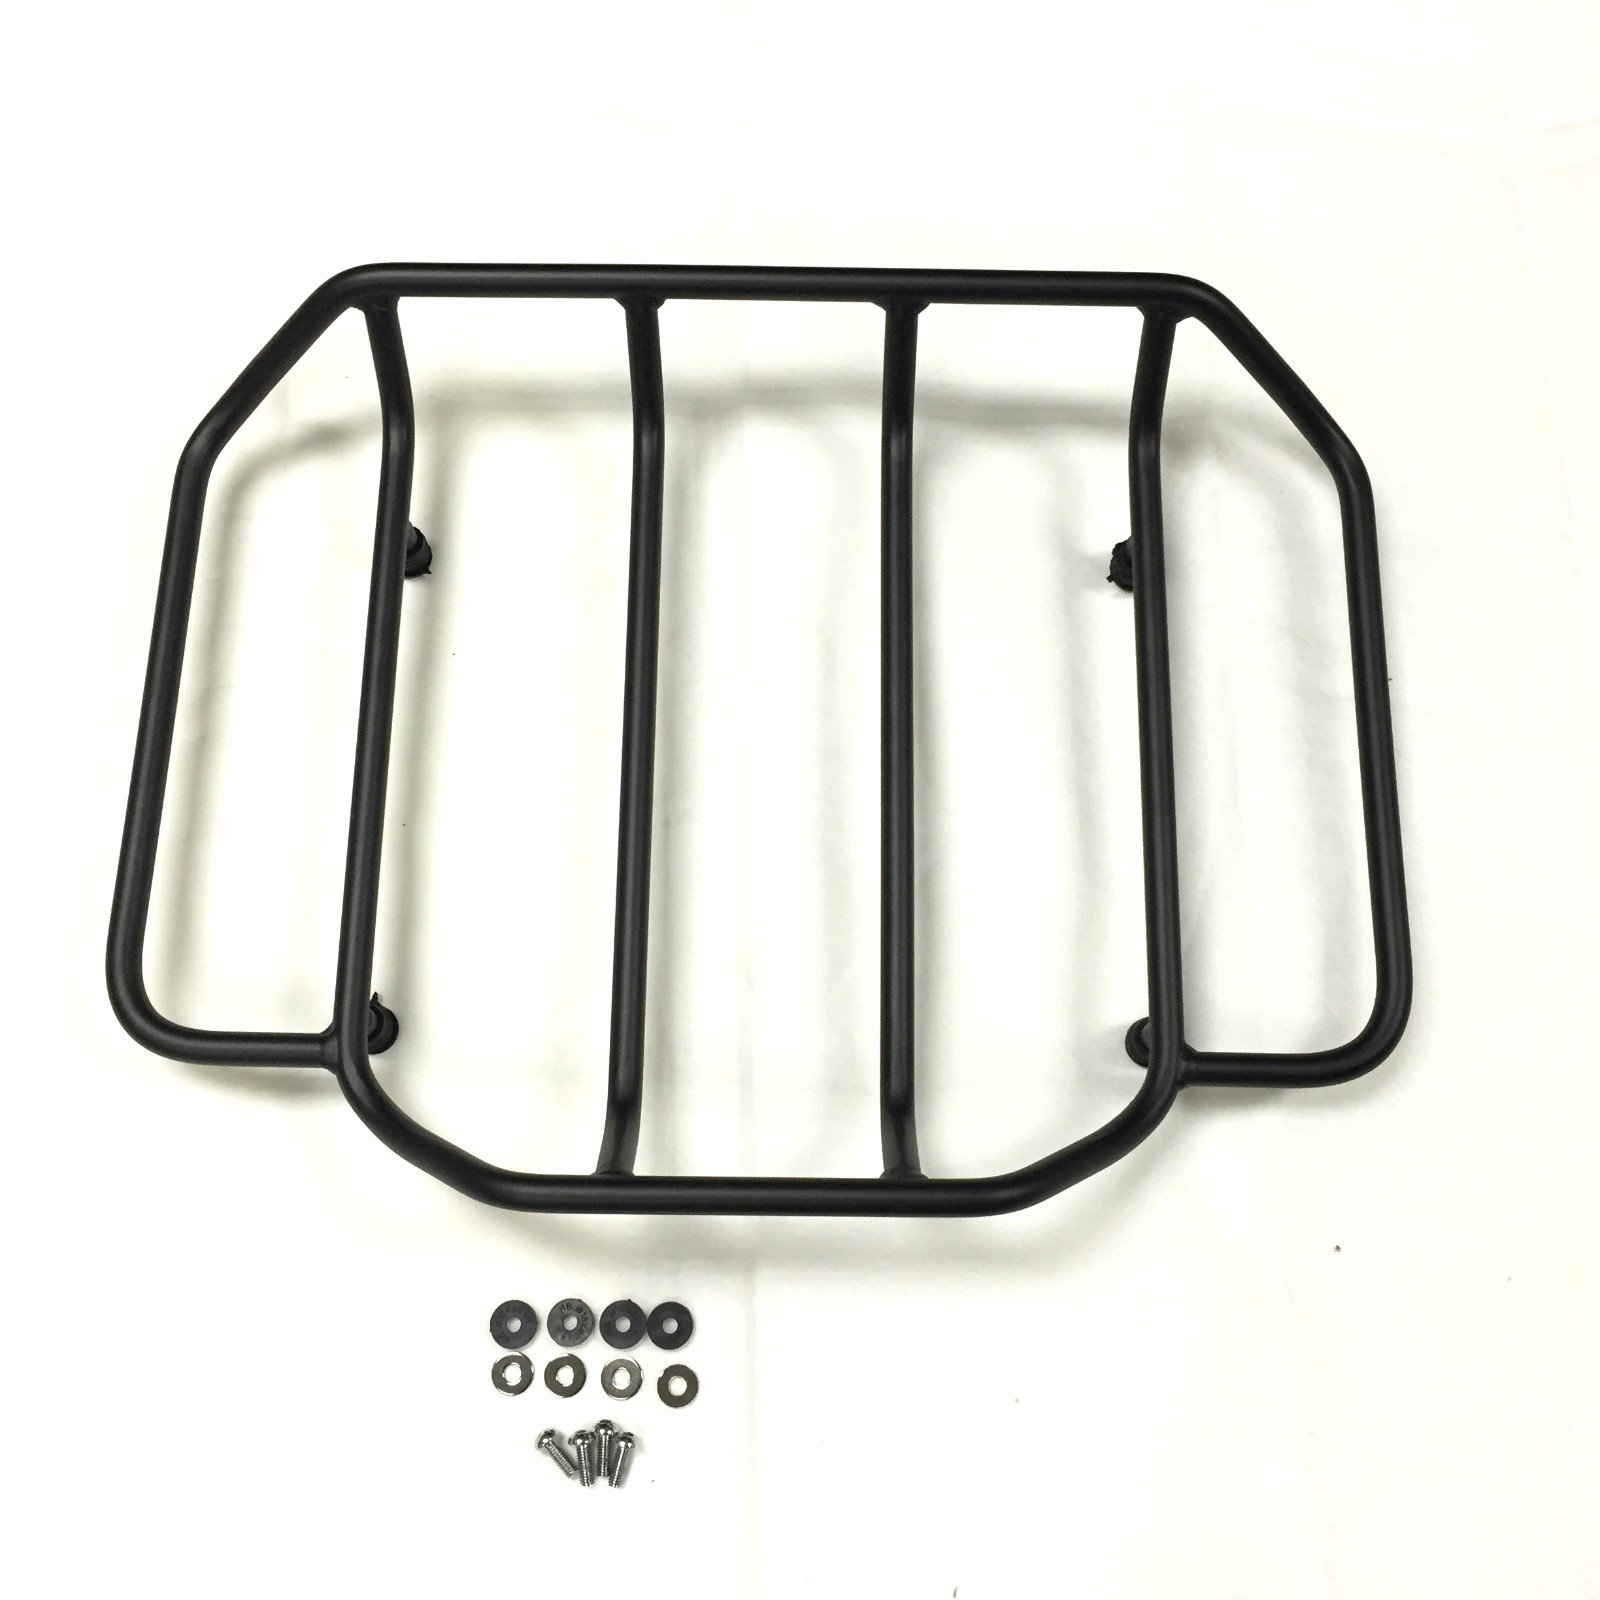 HTT Group Motorcycle Black Luggage Rack Rail Trunk Luggage Rack Rail For Harley Touring Road King Street Glide Road Glide Electra Glide FLHTC FLHS